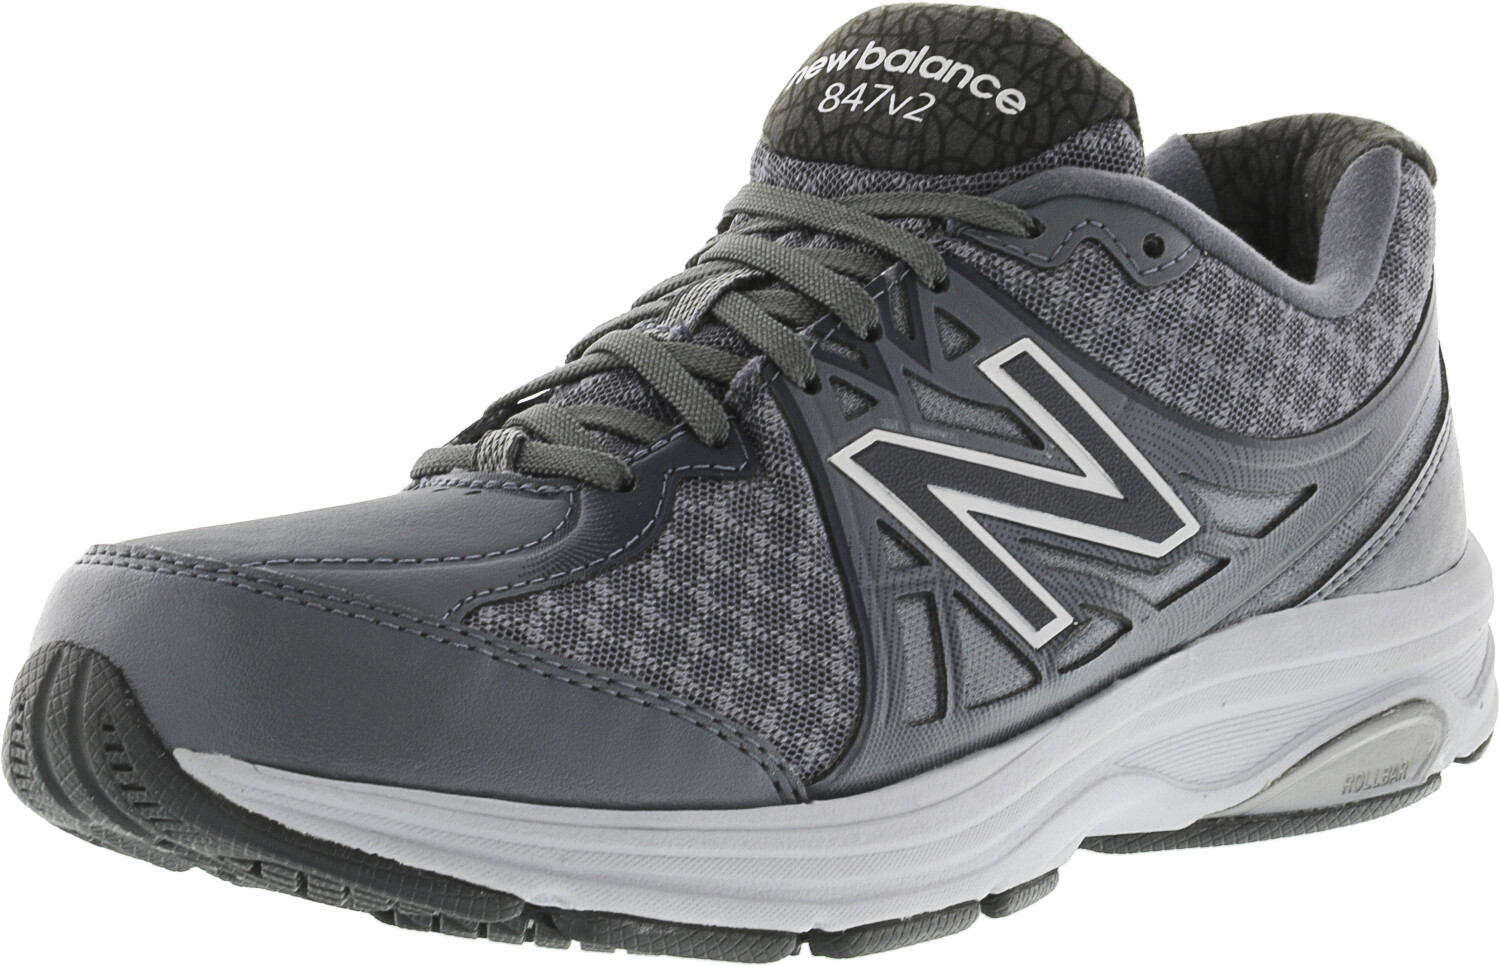 New Balance Ww847 Walking Shoe - 6N - Gy2